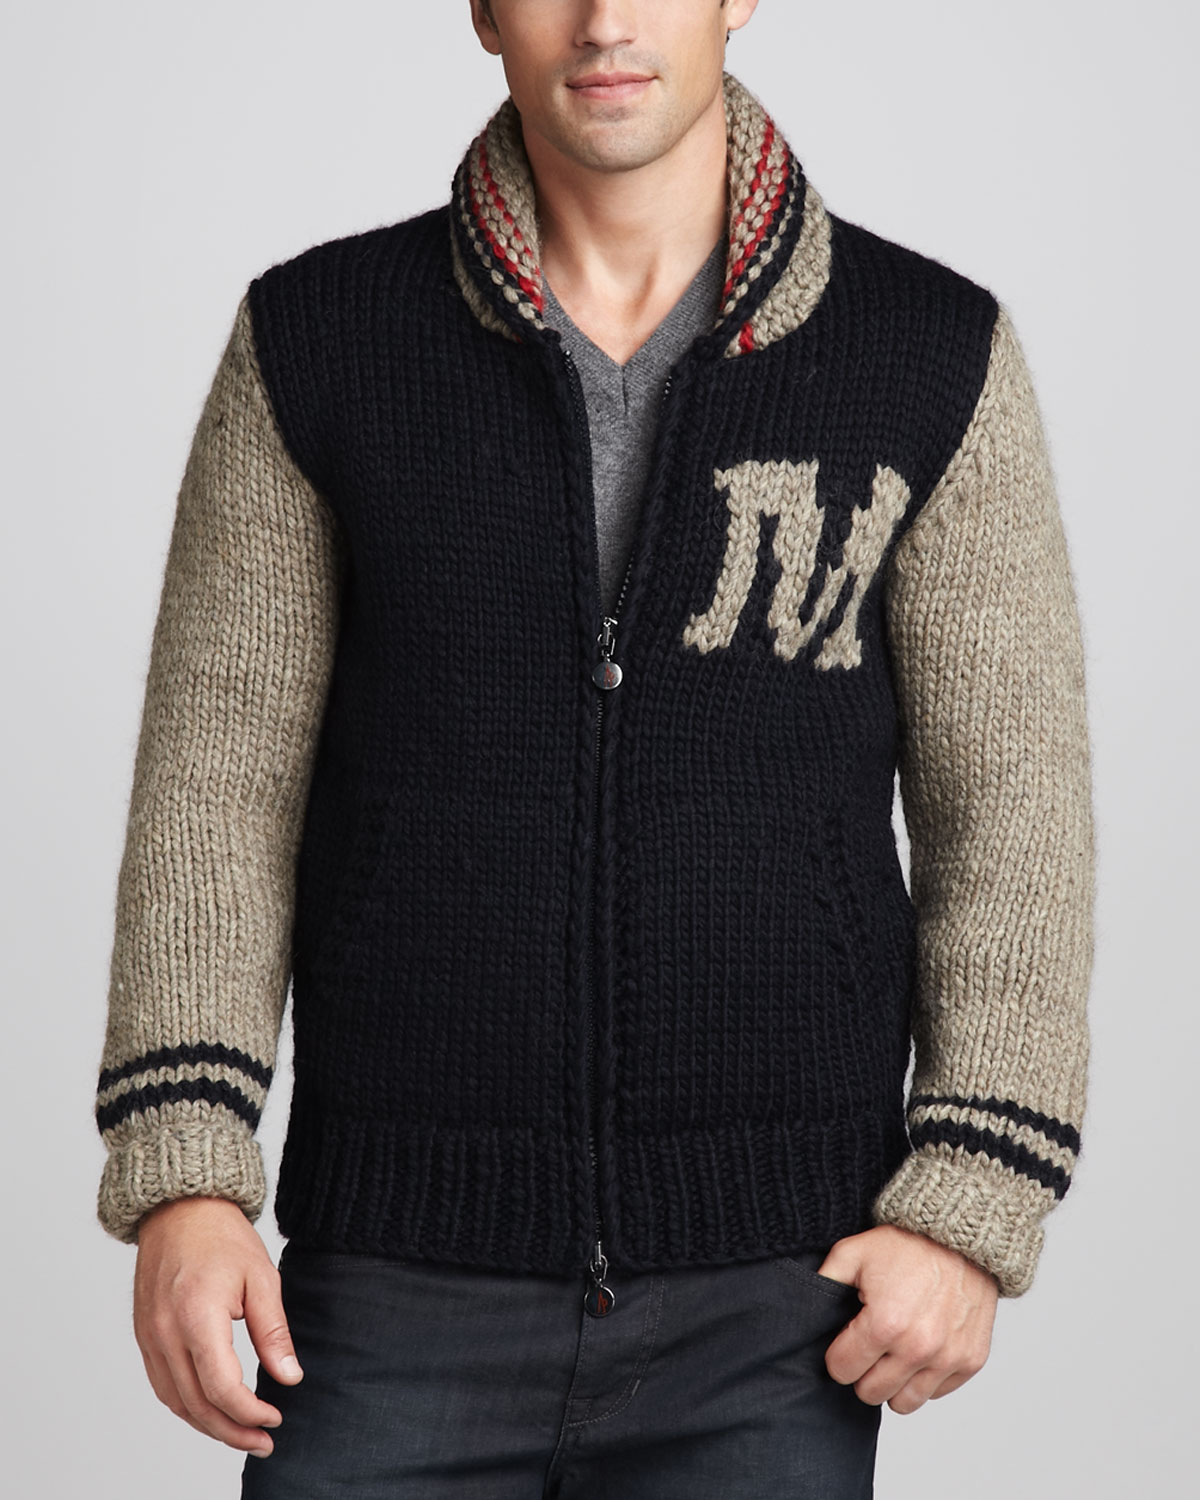 You searched for: varsity cardigan! Etsy is the home to thousands of handmade, vintage, and one-of-a-kind products and gifts related to your search. No matter what you're looking for or where you are in the world, our global marketplace of sellers can help you find unique and affordable options. Let's get started!